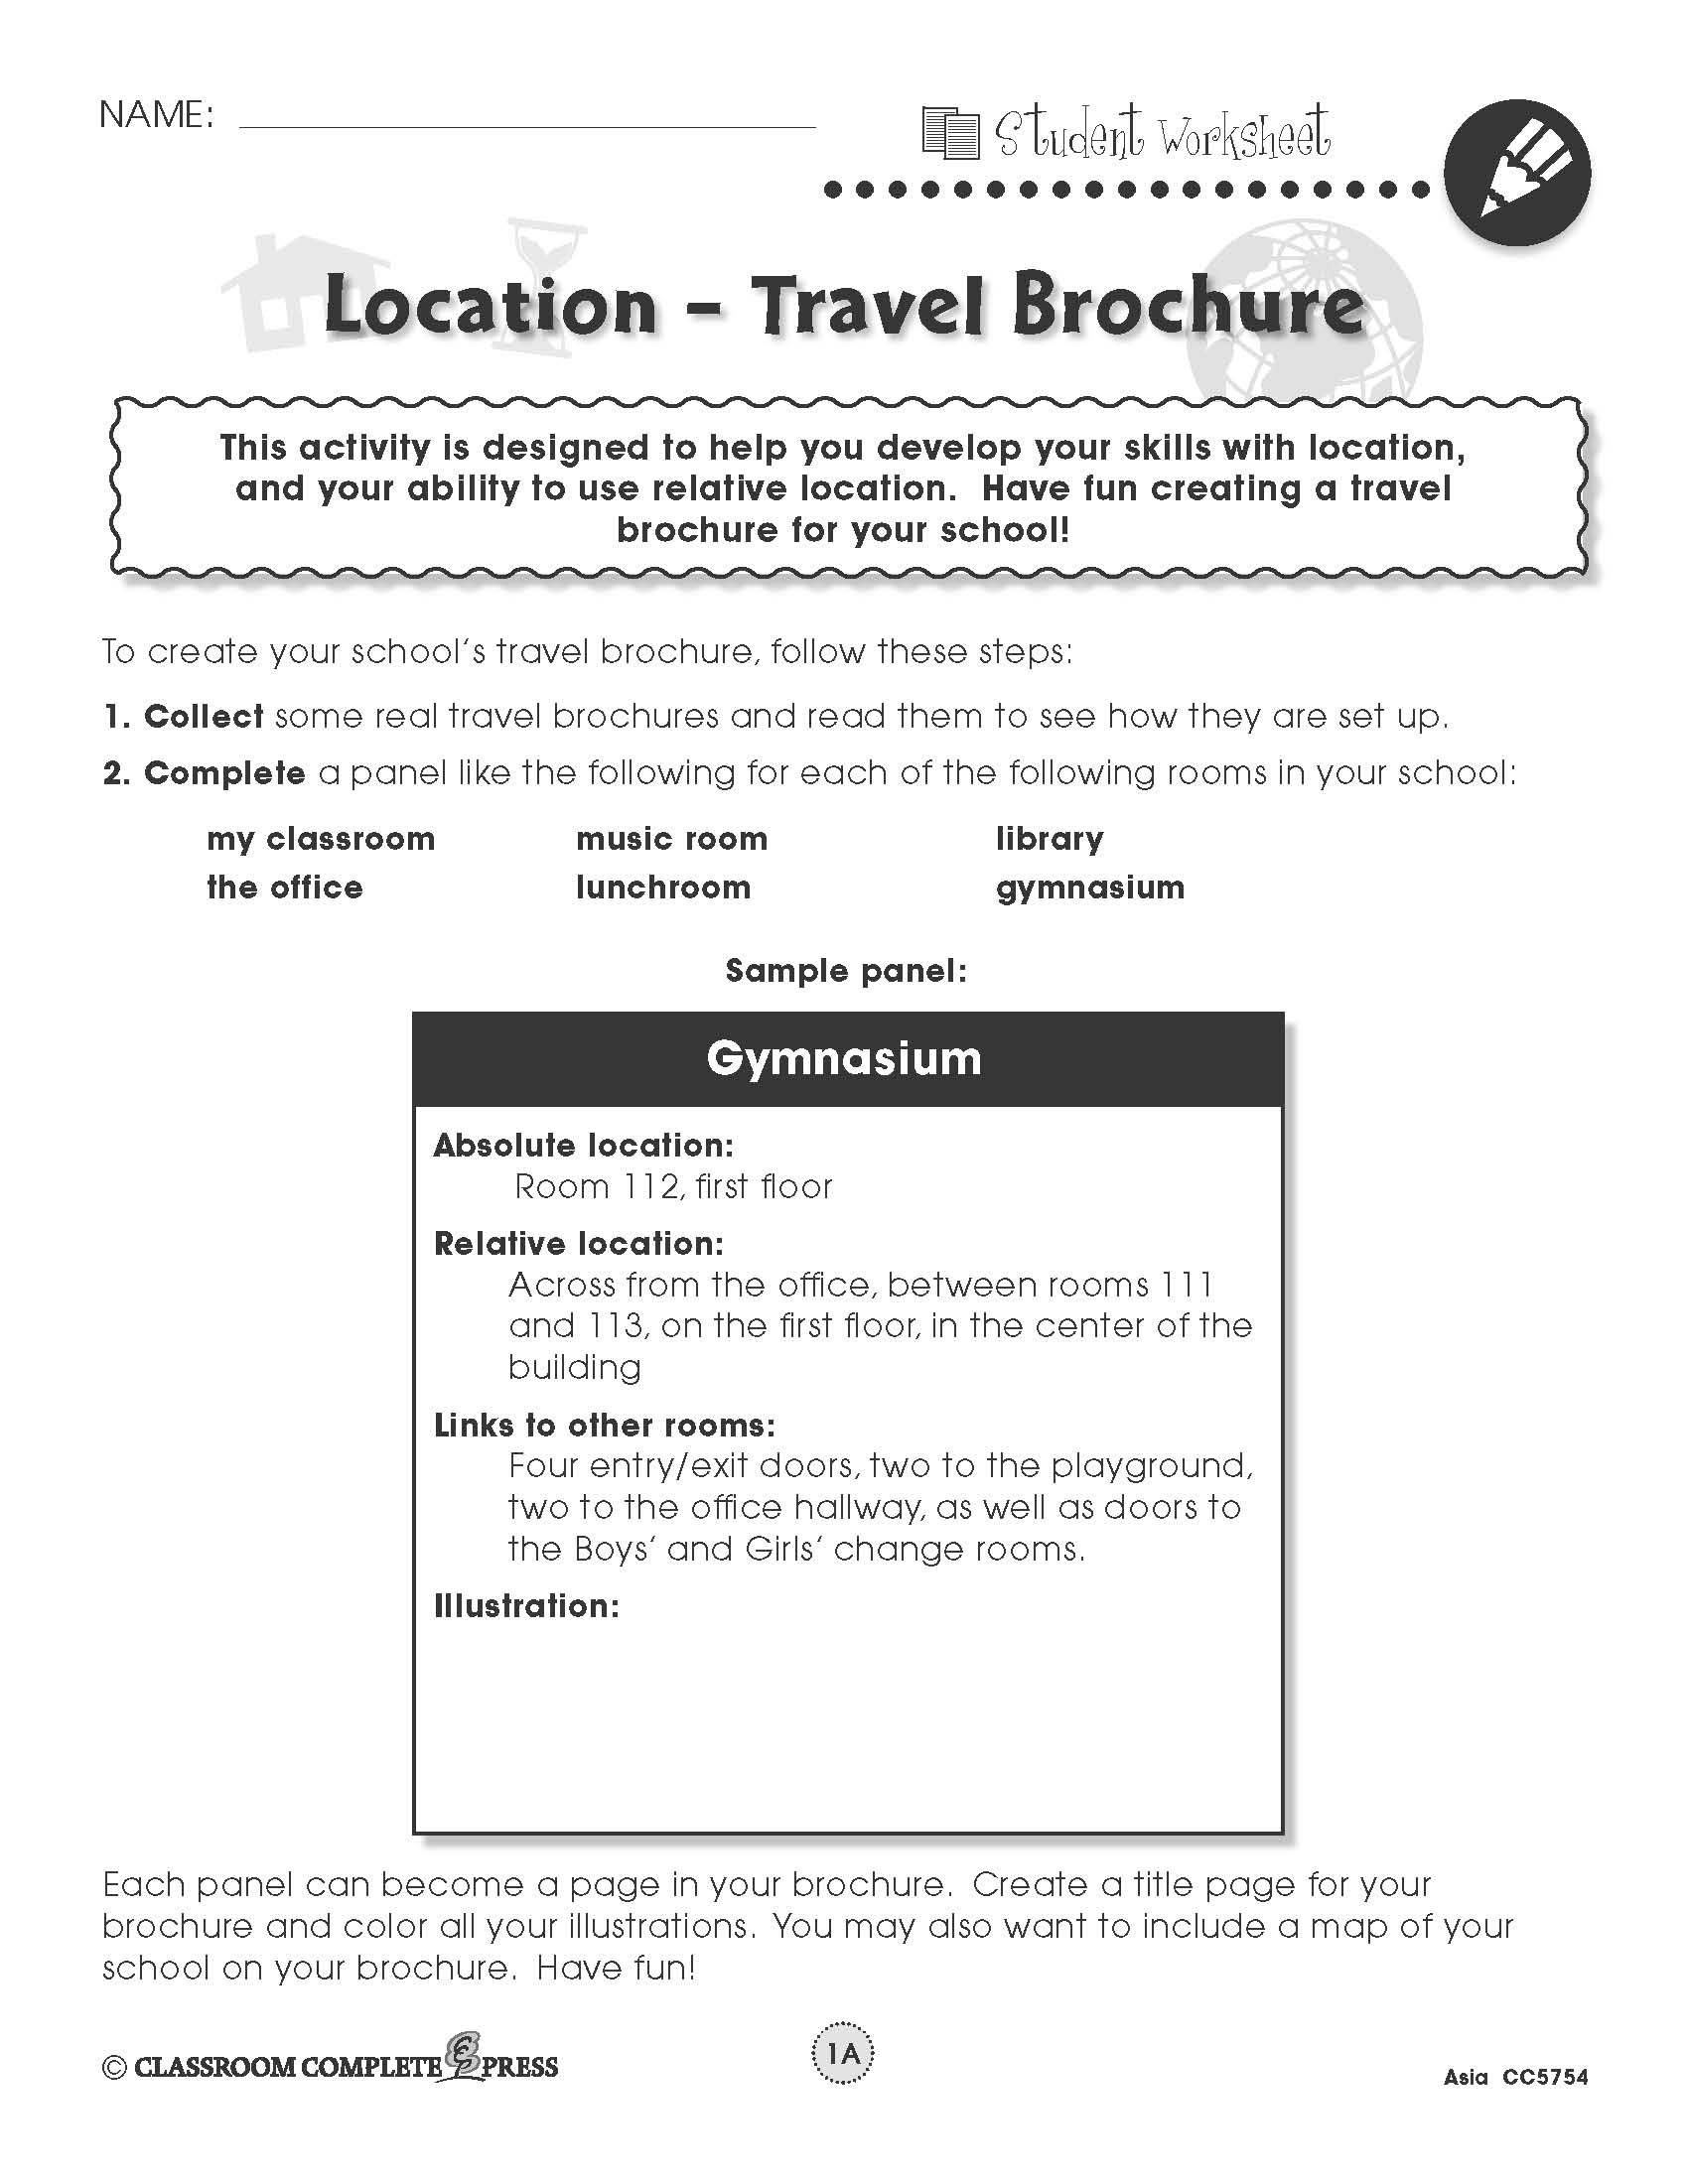 Pin By Classroom Complete Press On Geography Travel The